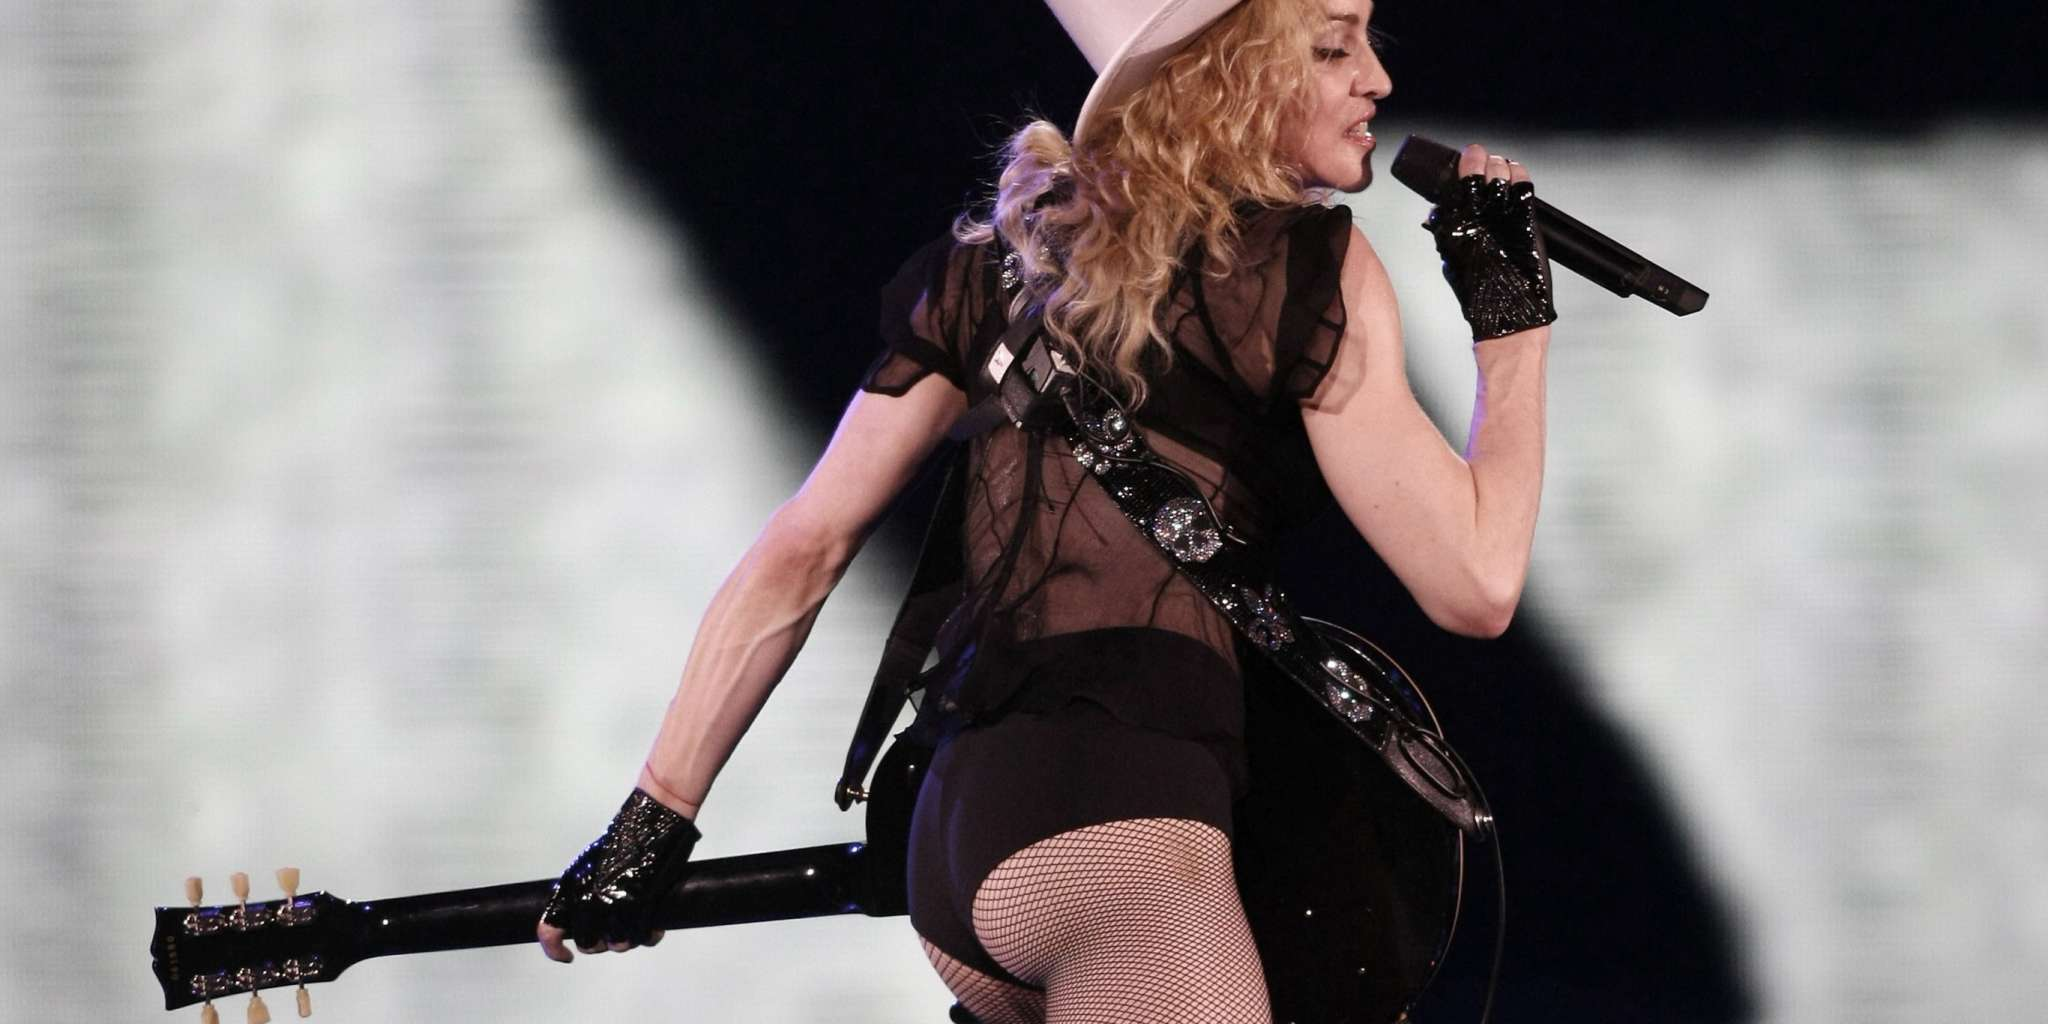 Madonna's Latest Video Has Fans Saying That Her Booty Looks 'Botched' - Watch It Here